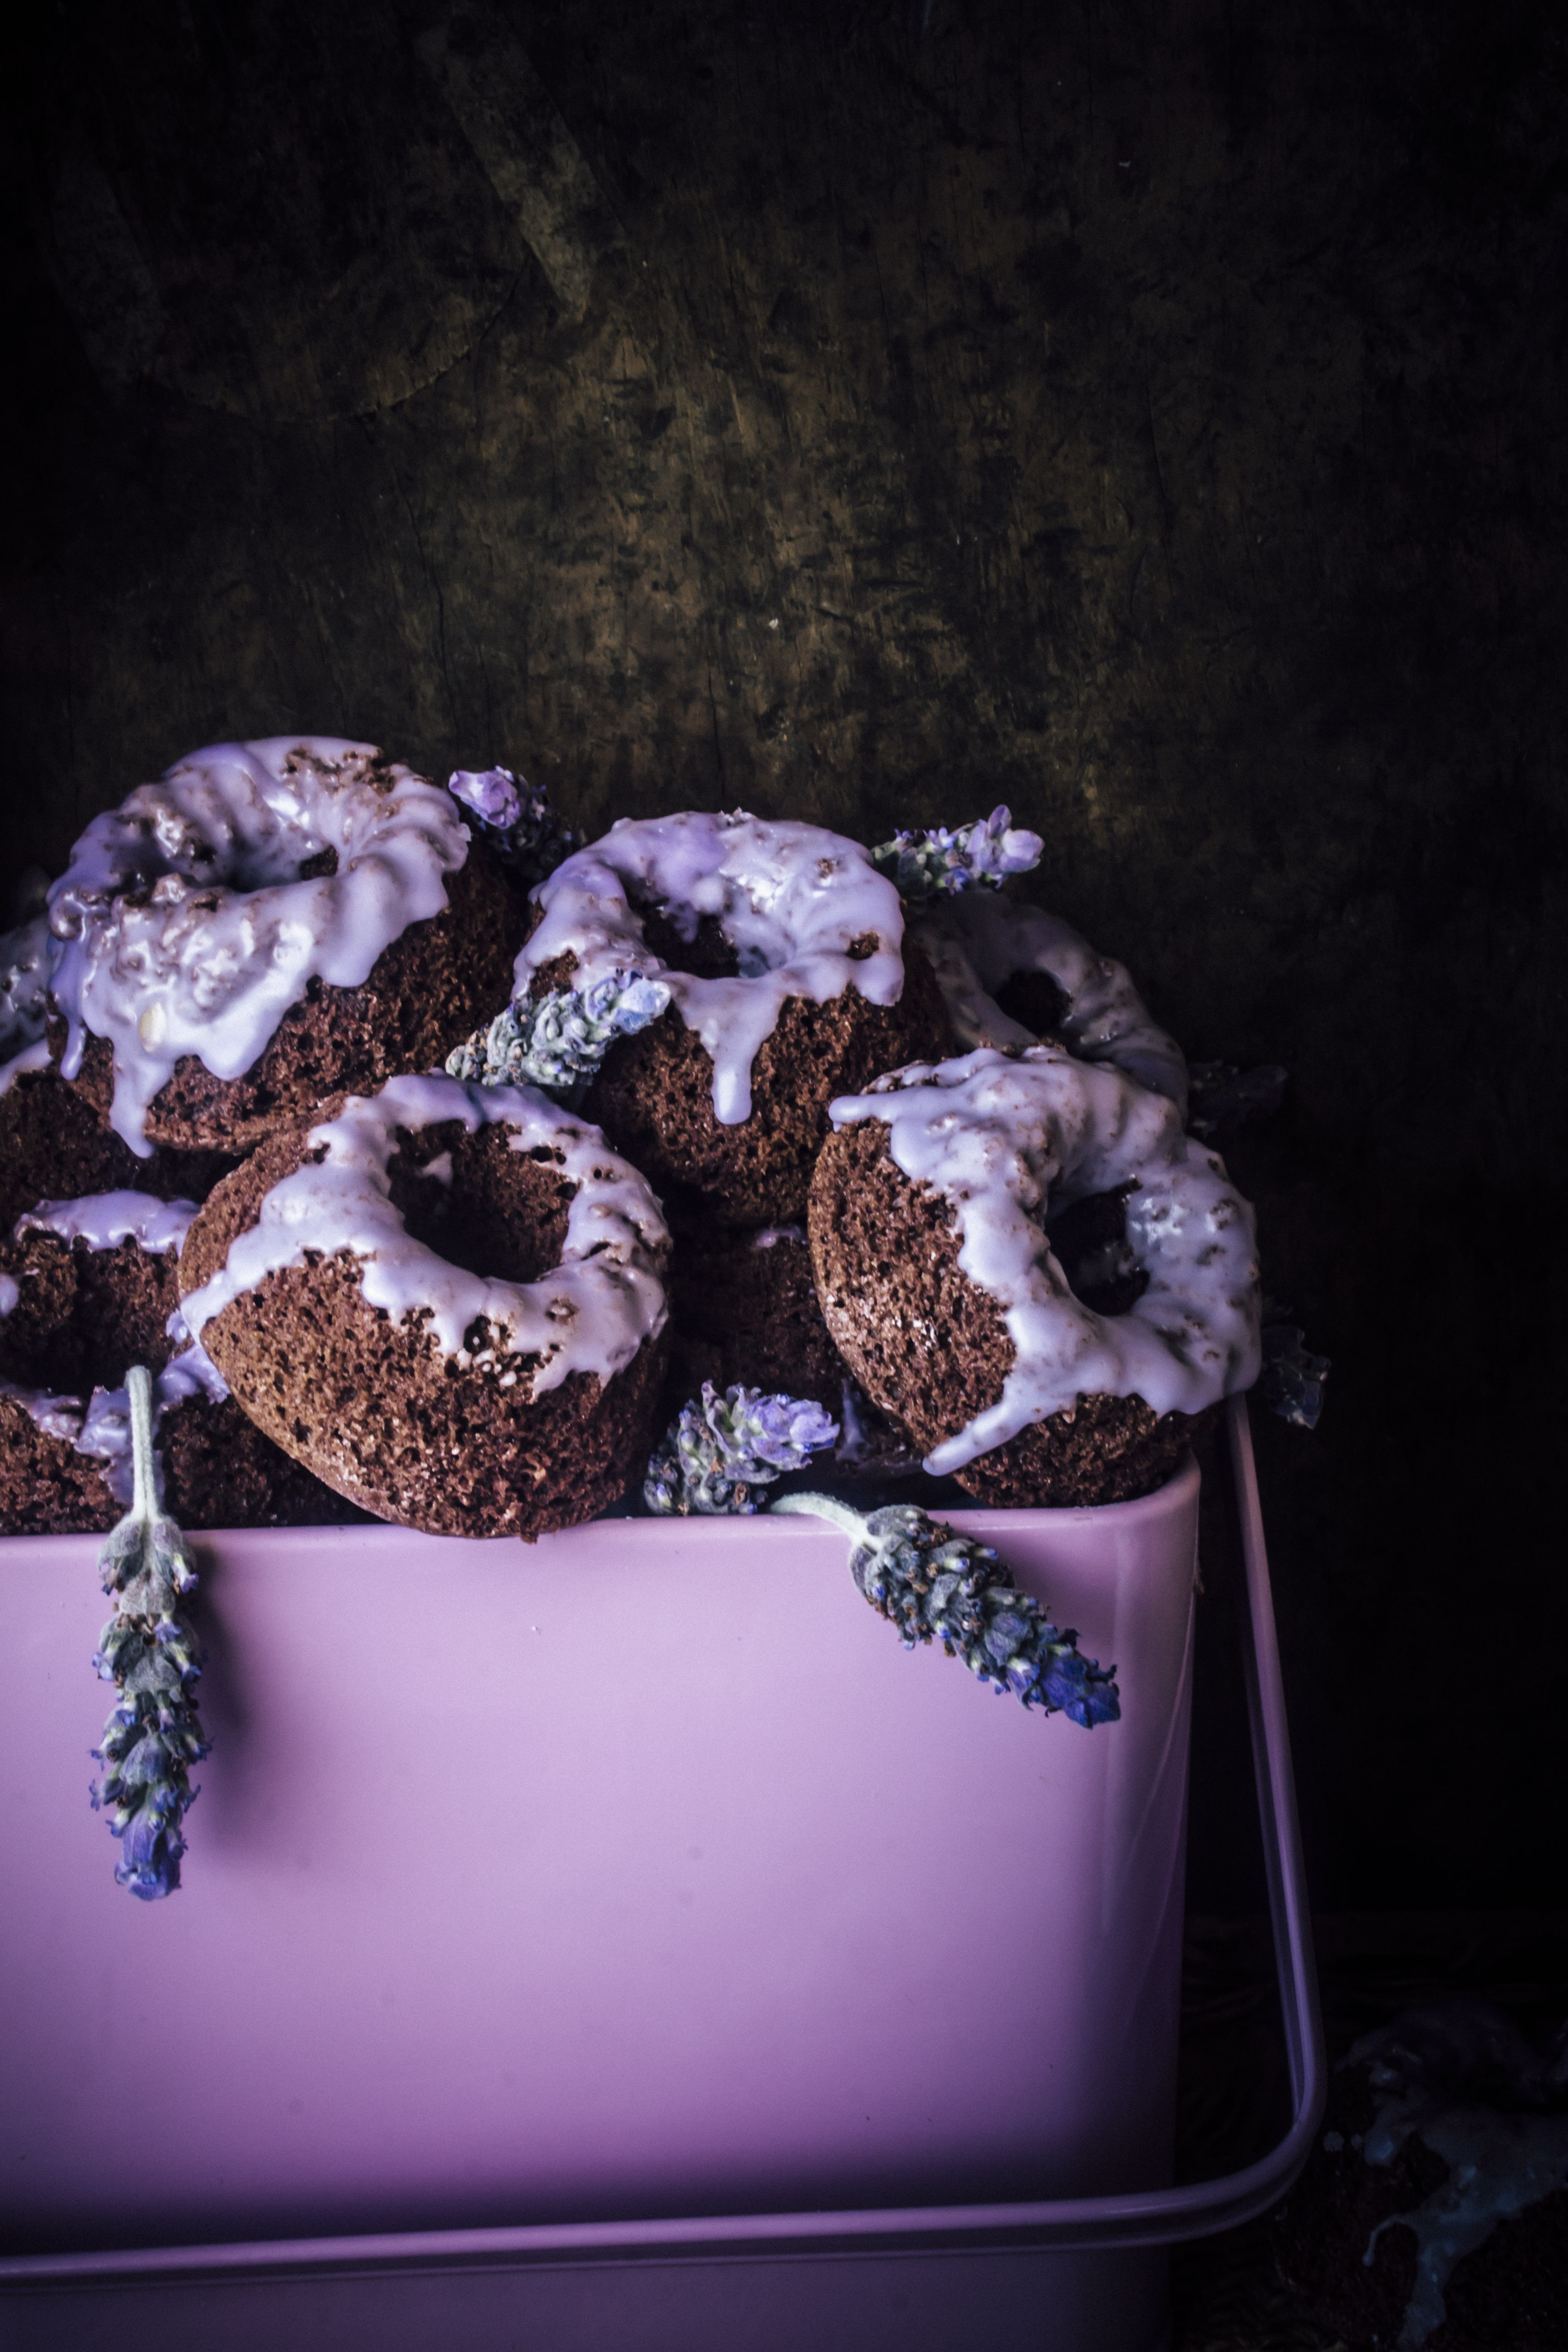 Chocolate Mini Cakes With an Easy lavender Glaze. Simple And Delicious